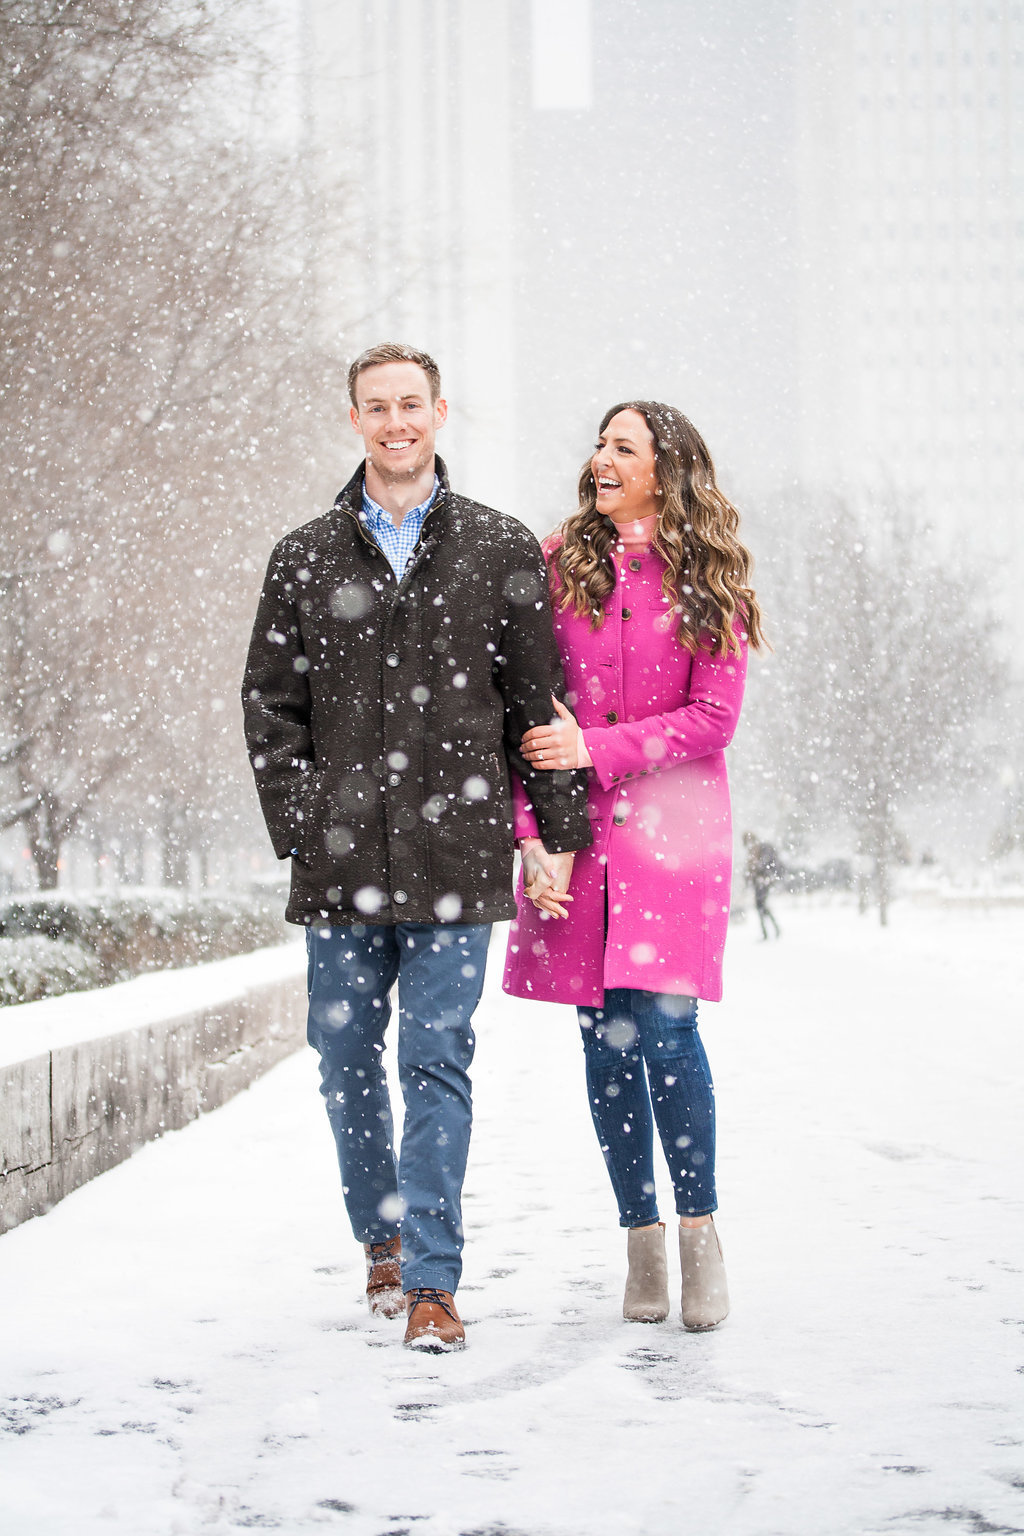 Millennium Park Chicago Illinois Winter Engagement Photographer Taylor Ingles 16